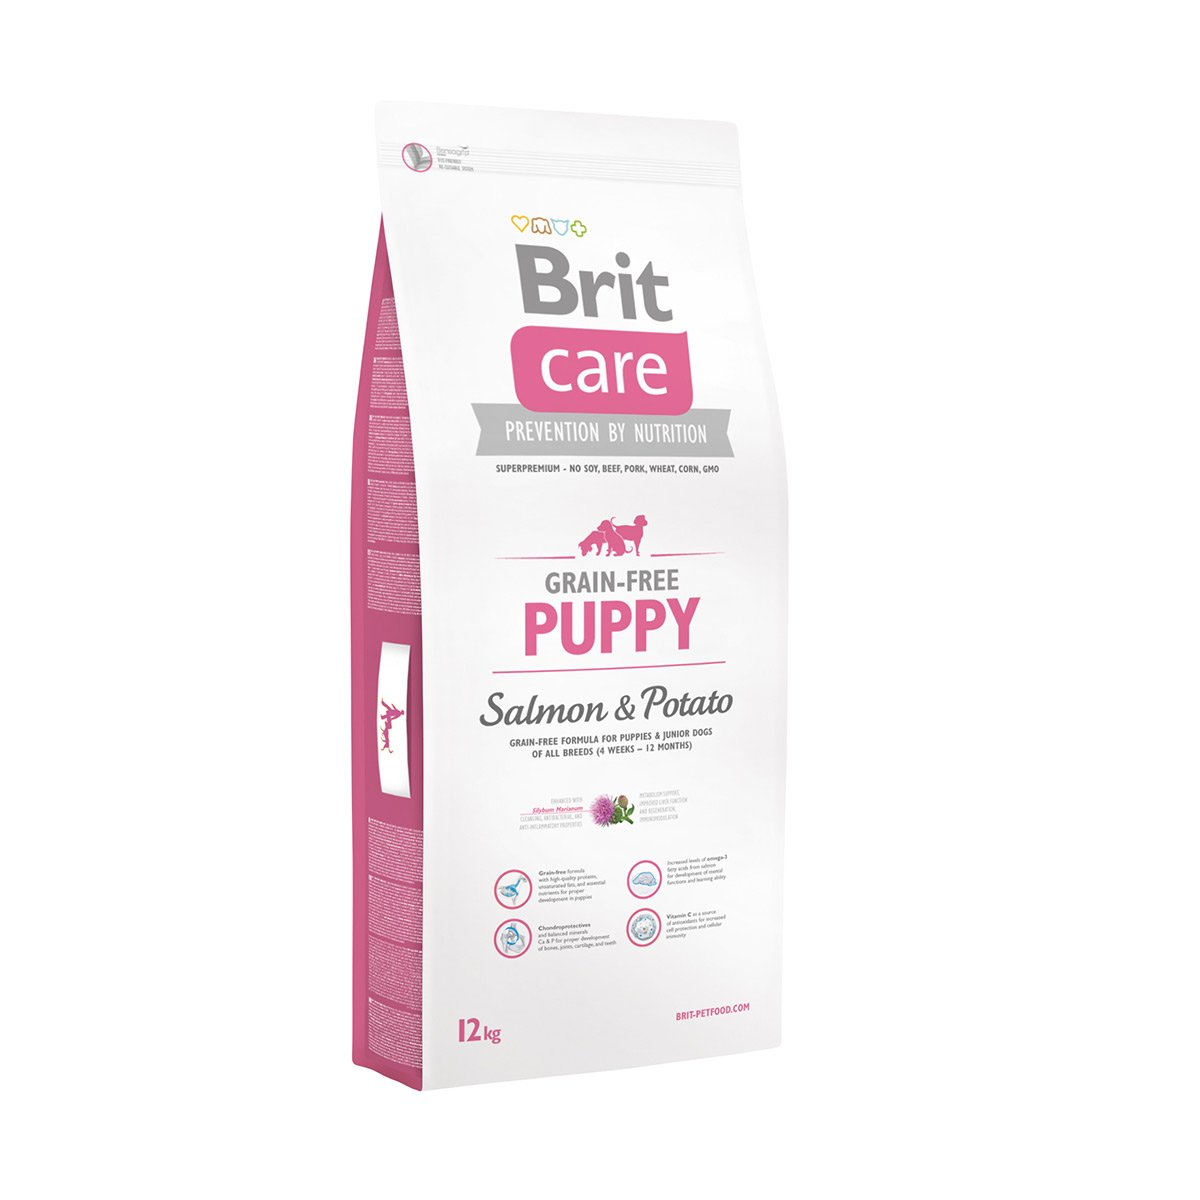 Brit Care Dog Grain-free Puppy Salmon & Potato 2x12kg von Brit